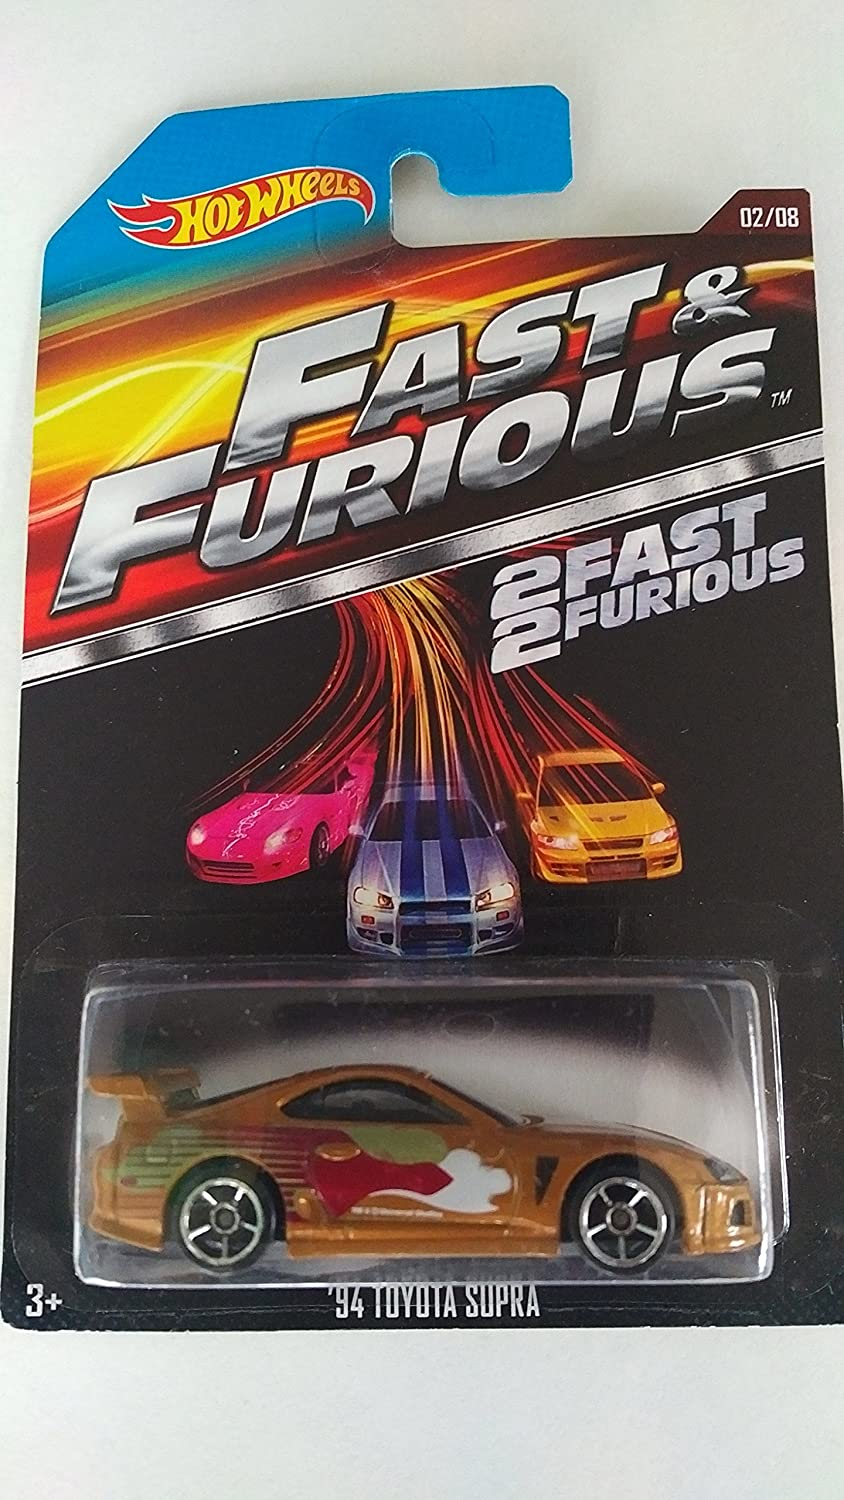 toyota supra fast and furious 2. 2015 hot wheels fast u0026 furious 28 u002794 toyota supra gold amazoncouk toys games and 2 r